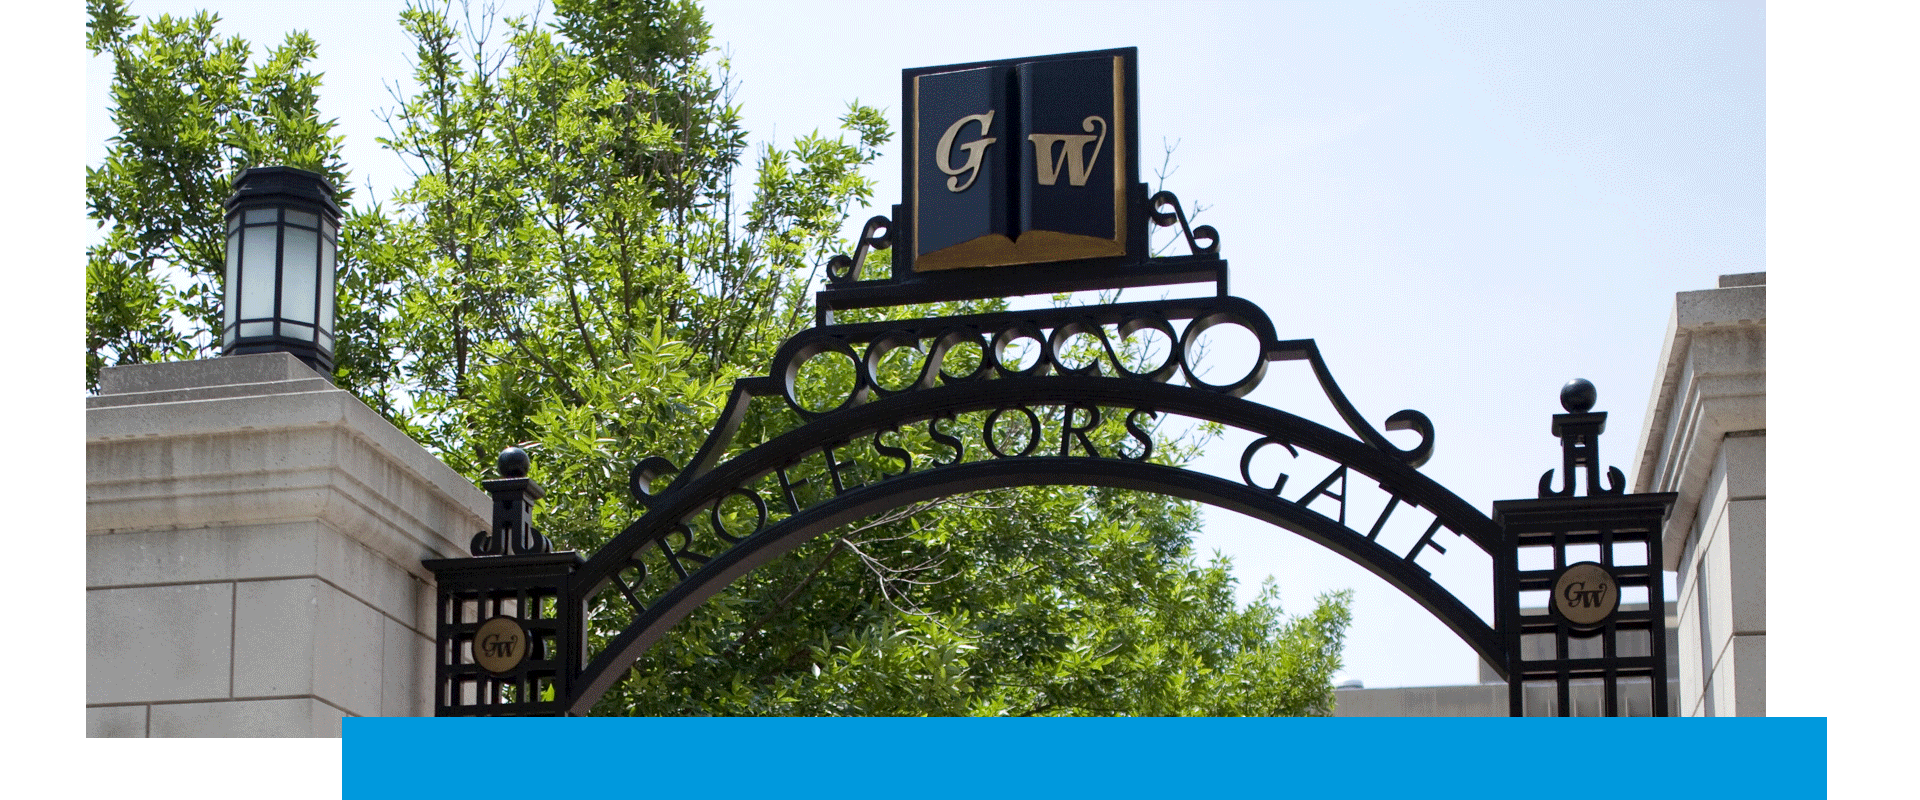 The George Washington University's Professor Gate